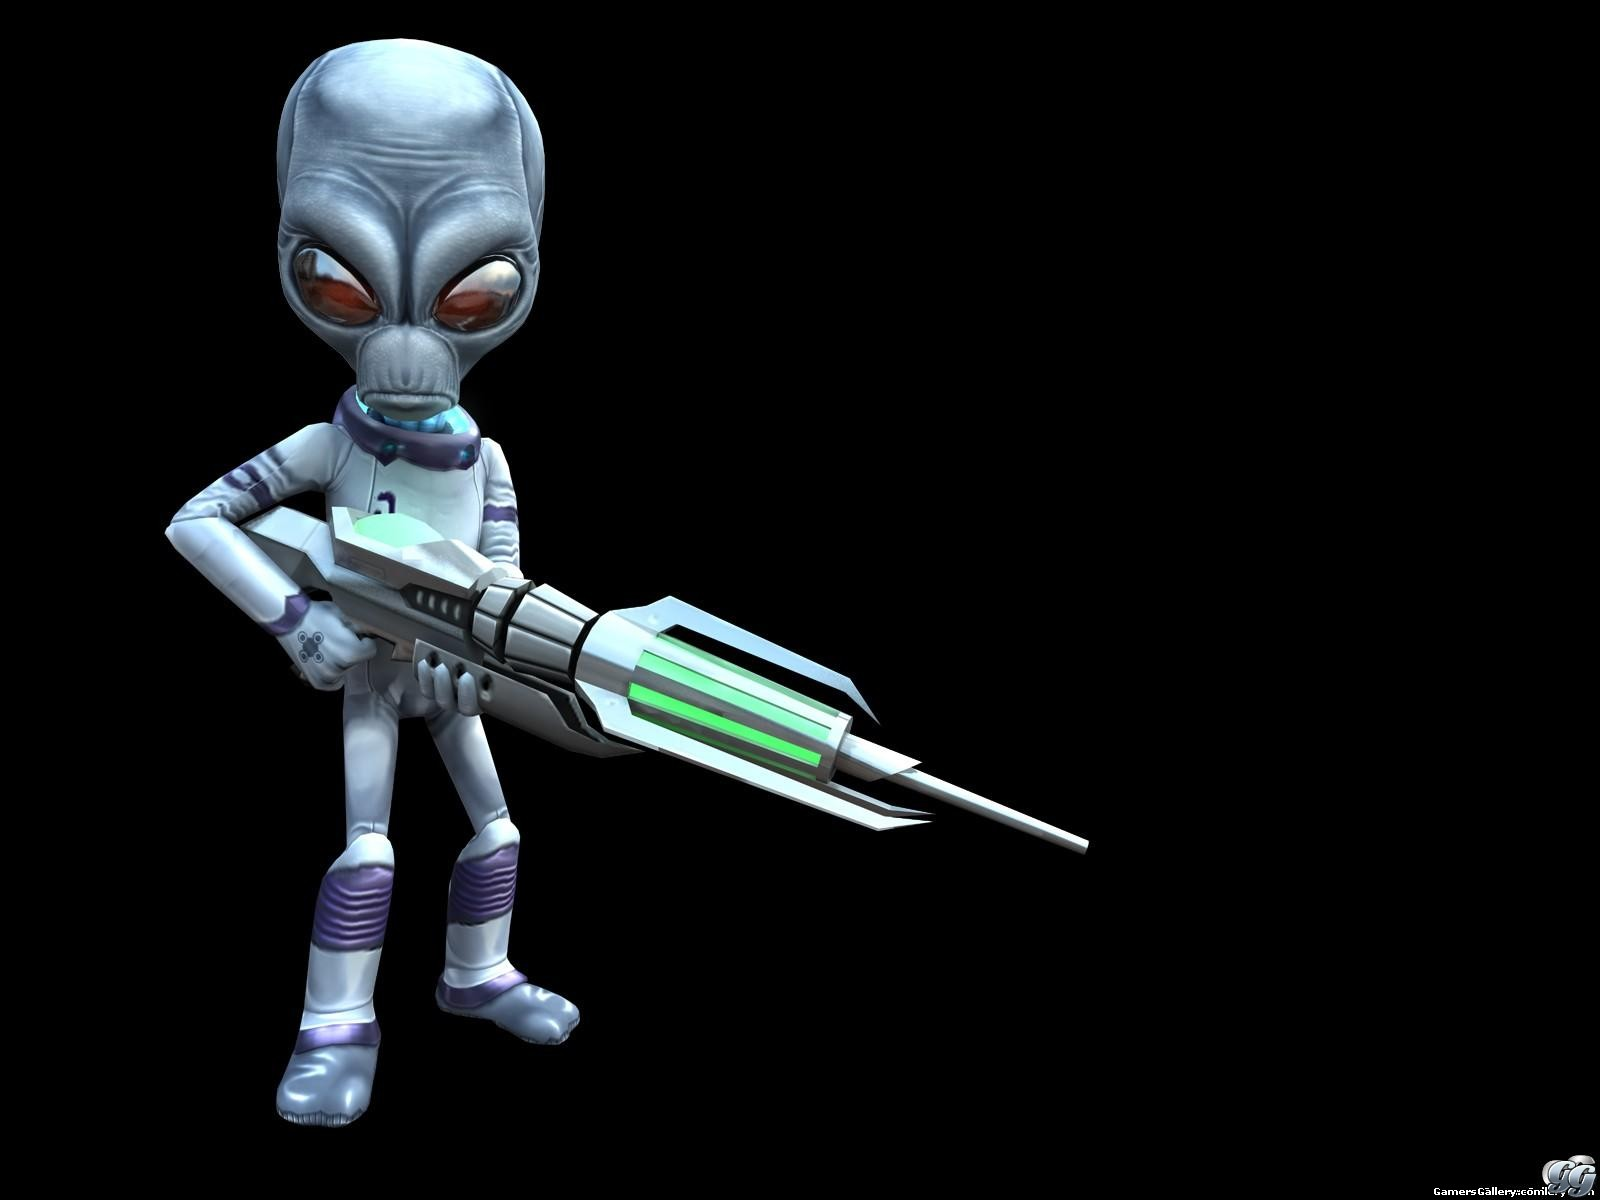 Gamers Gallery   Destroy All Humans Exclusive Wallpaper 1600x1200